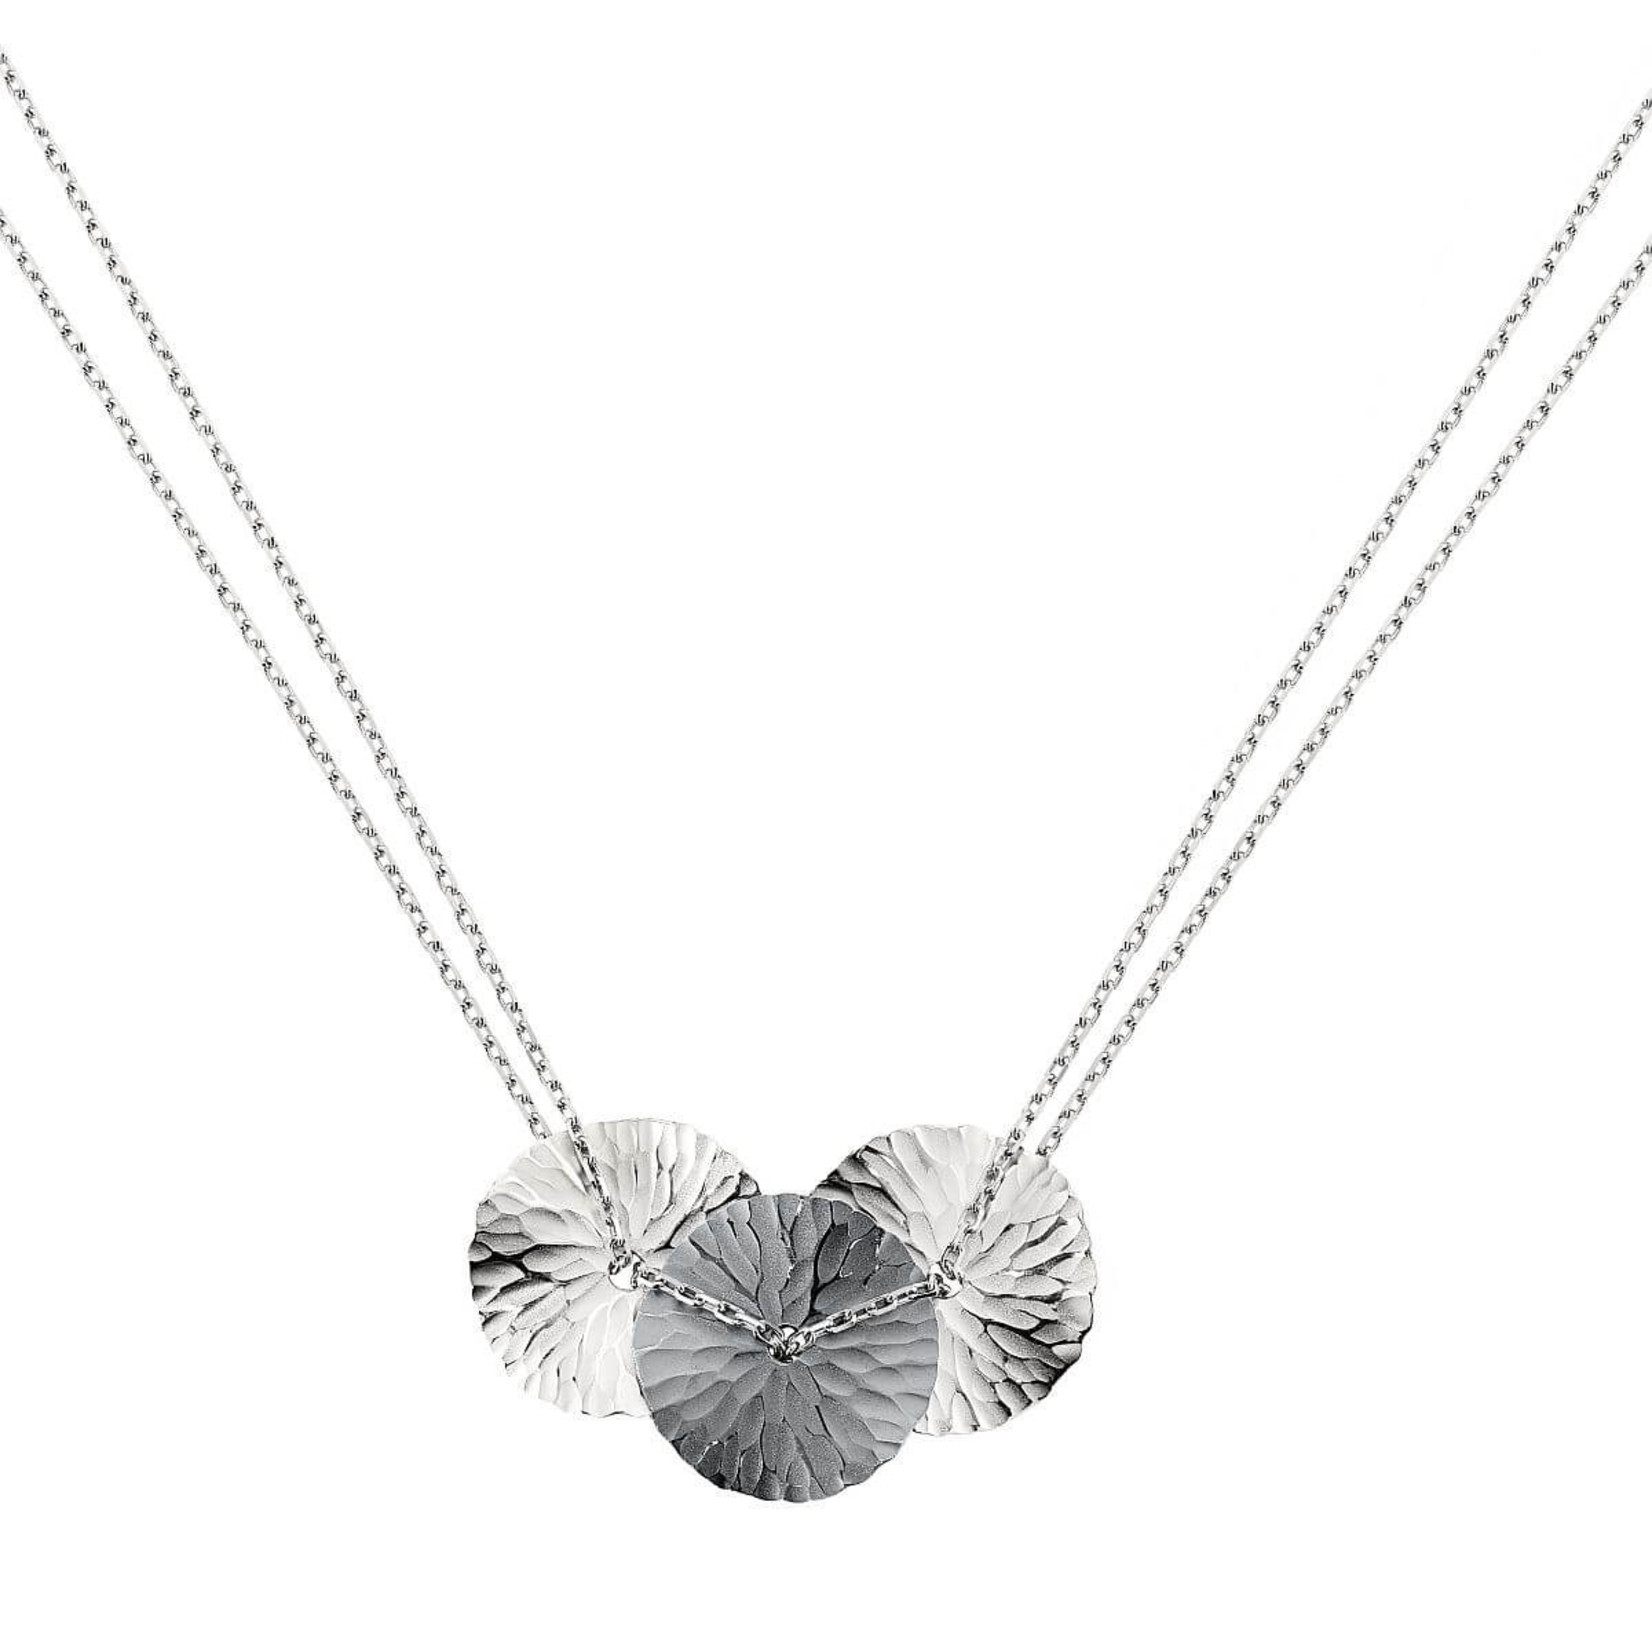 Oasis 3-Disc Necklace